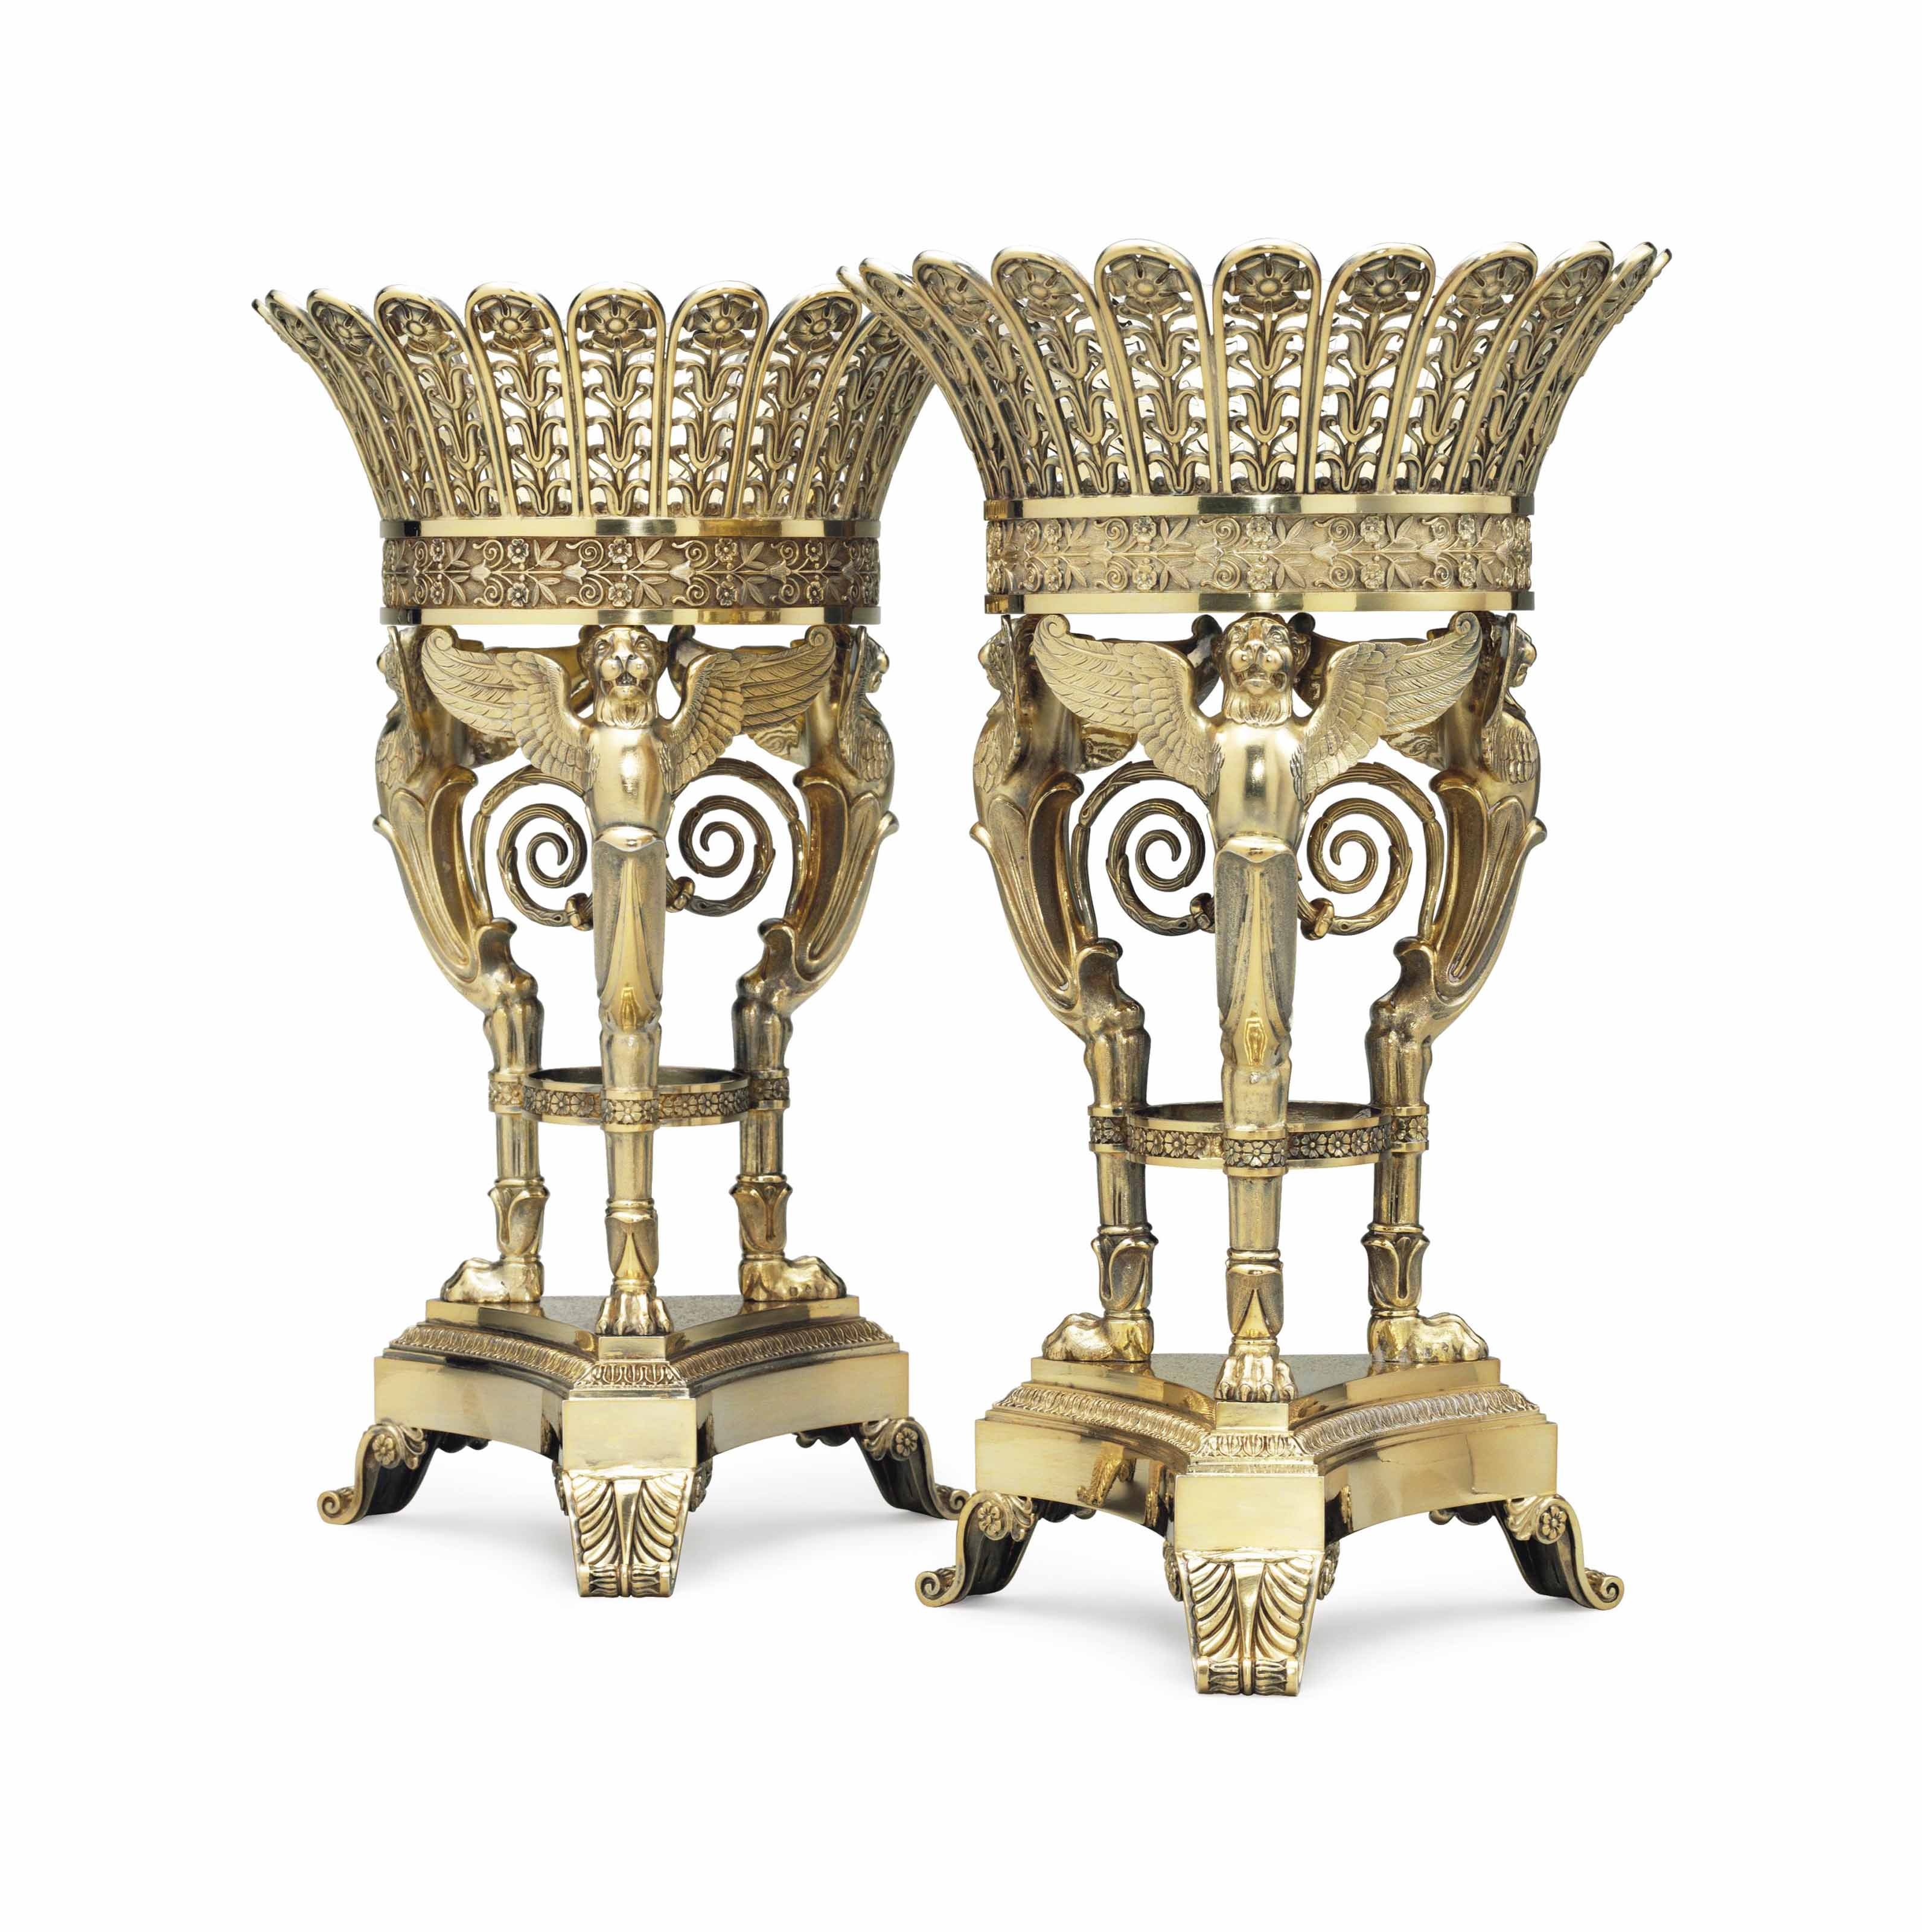 A PAIR OF FRENCH SILVER-GILT FRUIT STANDS